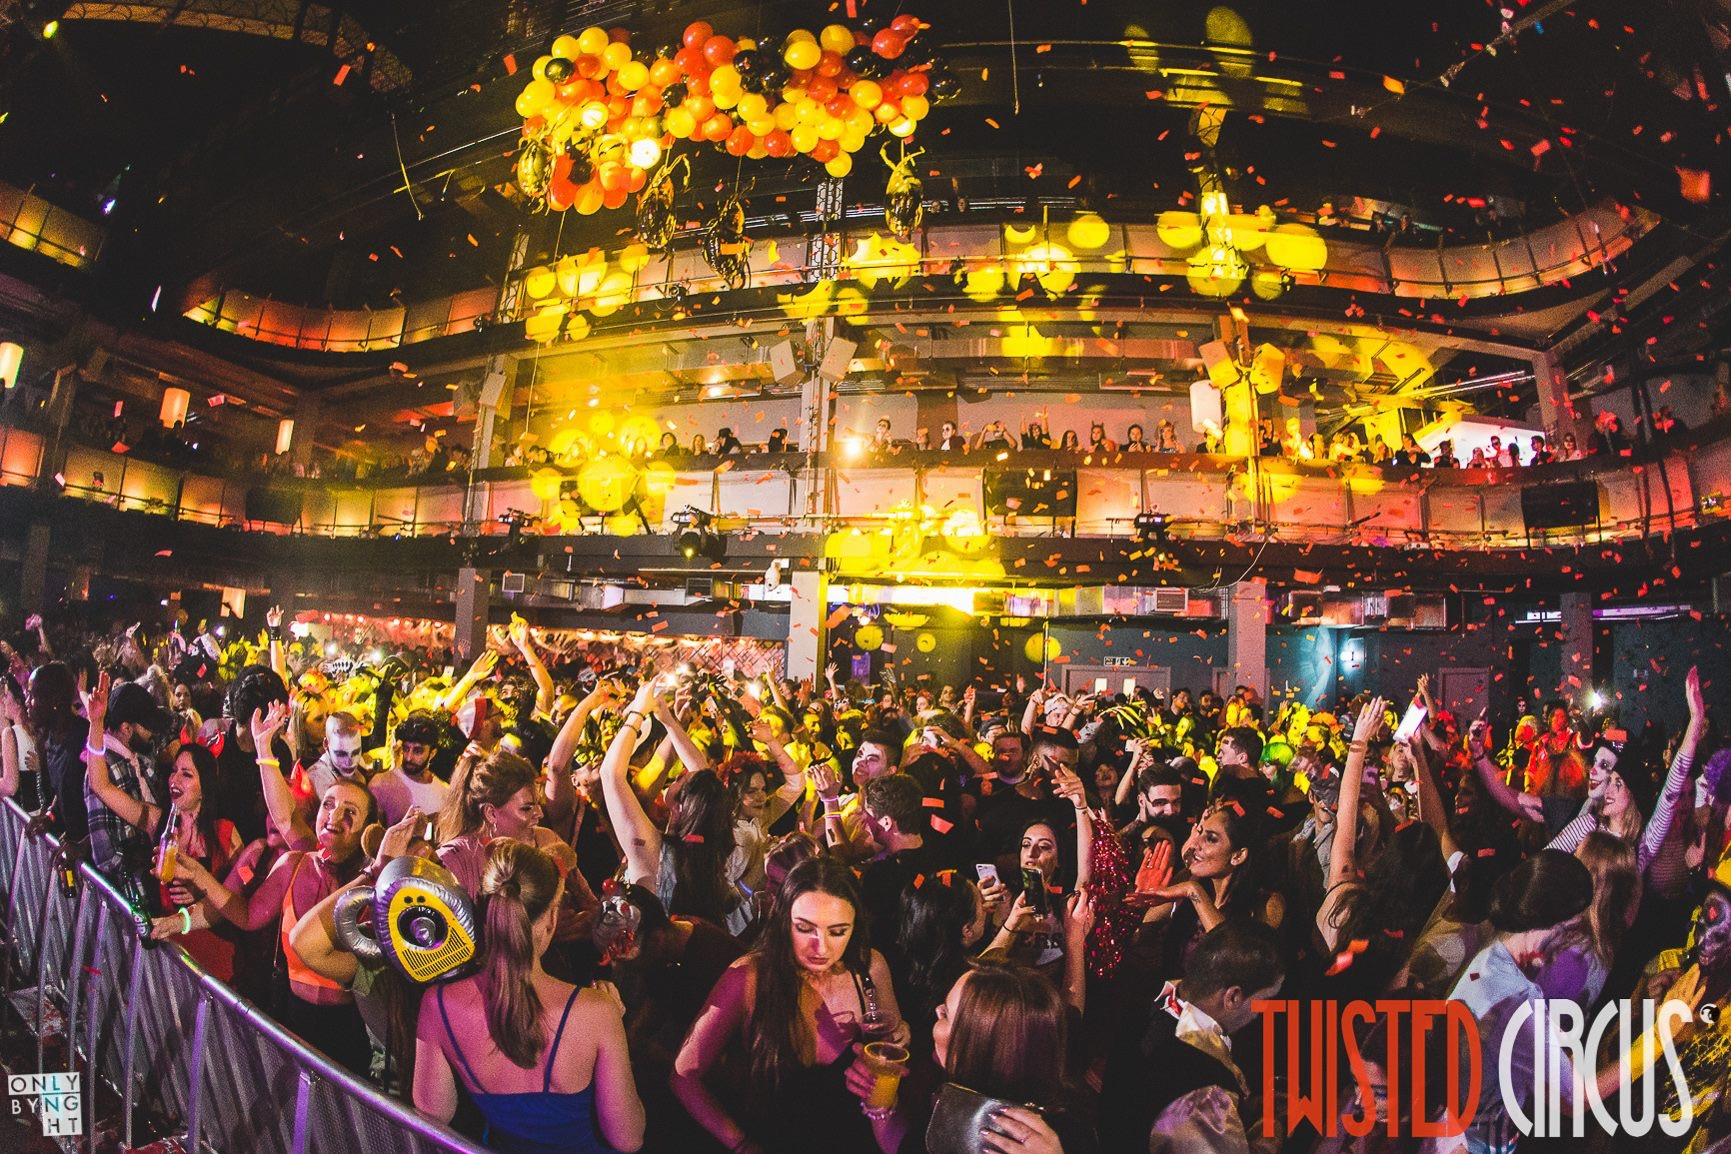 TWISTED CIRCUS HALLOWEEN FESTIVAL 2019 - NEWCASTLE